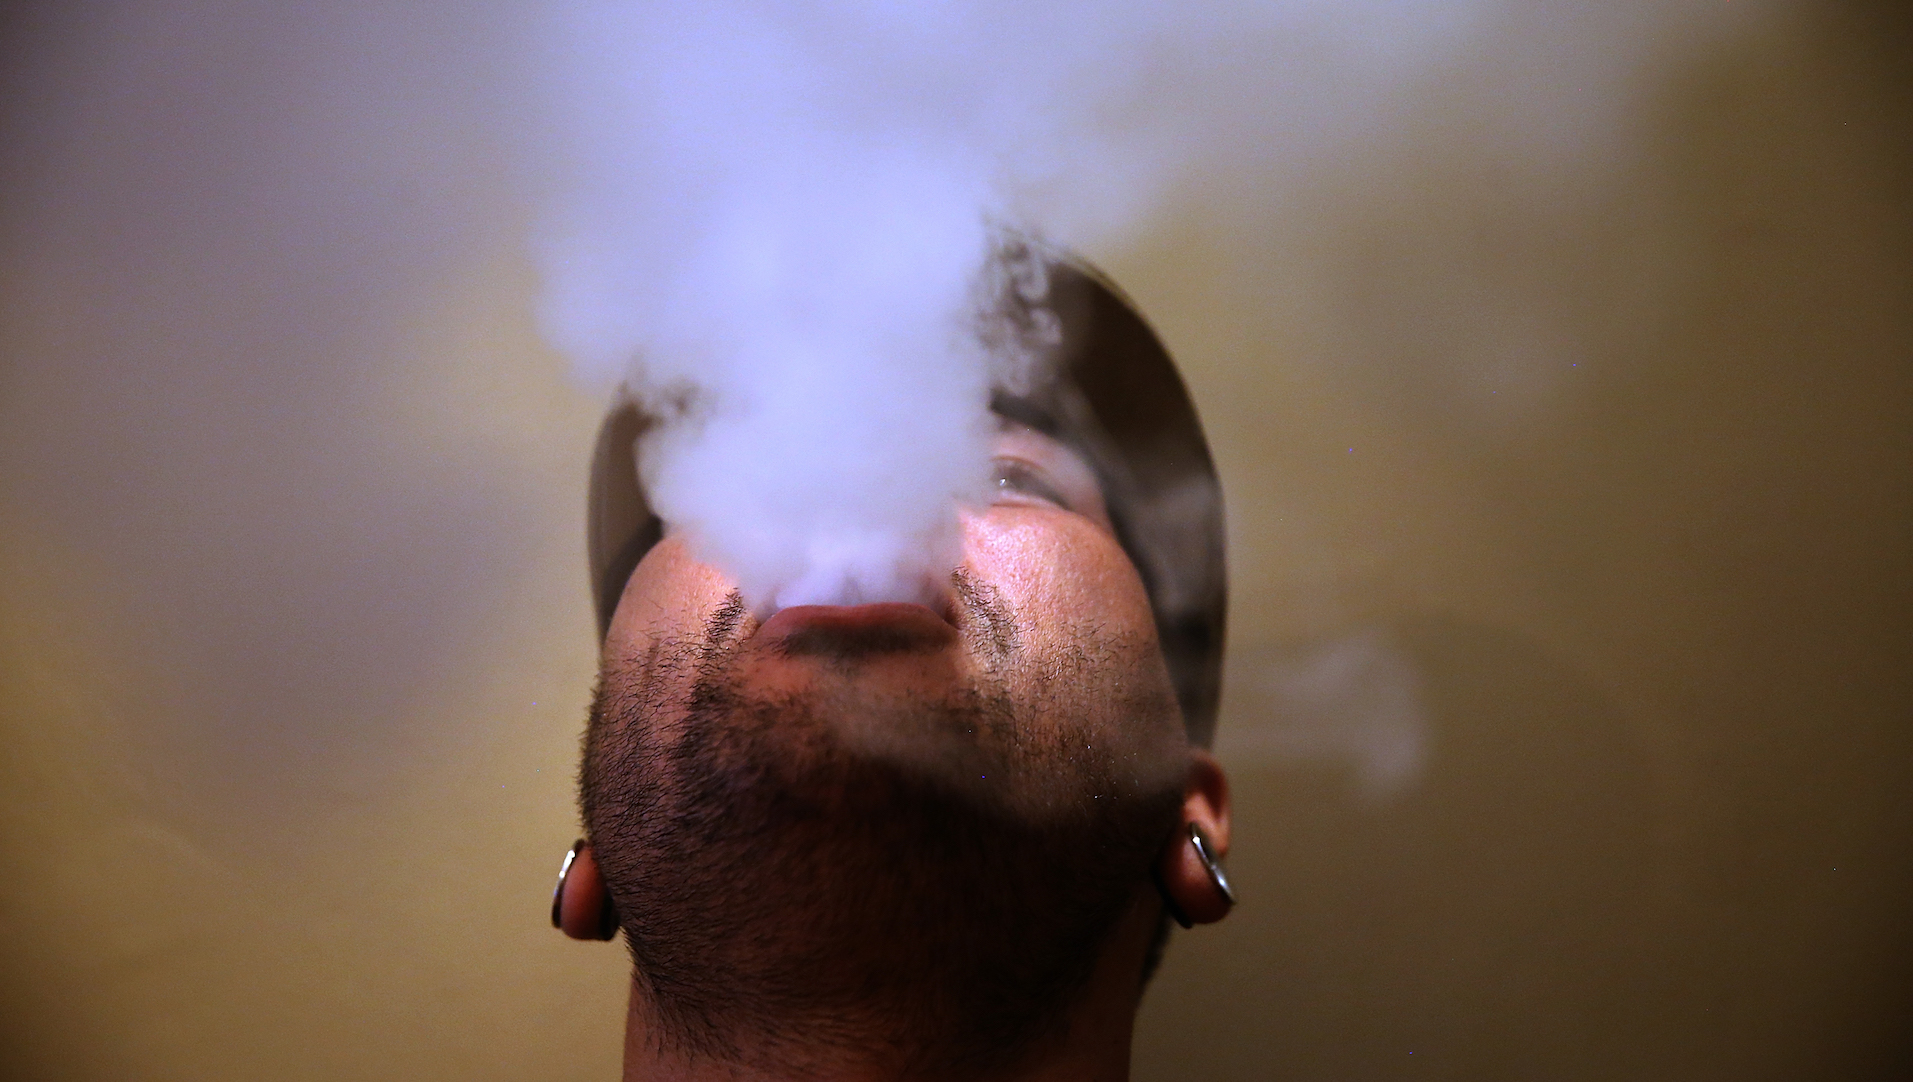 Thirdhand smoke is widespread and may be dangerous, mounting evidence shows